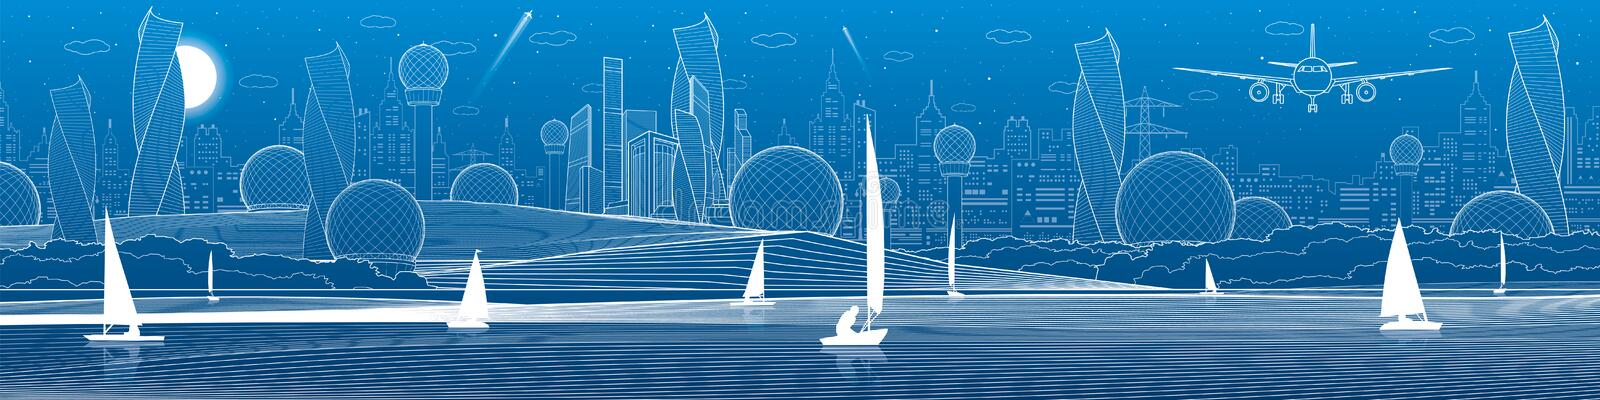 Futuristic City infrastructure panoramic illustration. Airplane fly. Night town at background. Sailing yachts on water. White line vector illustration